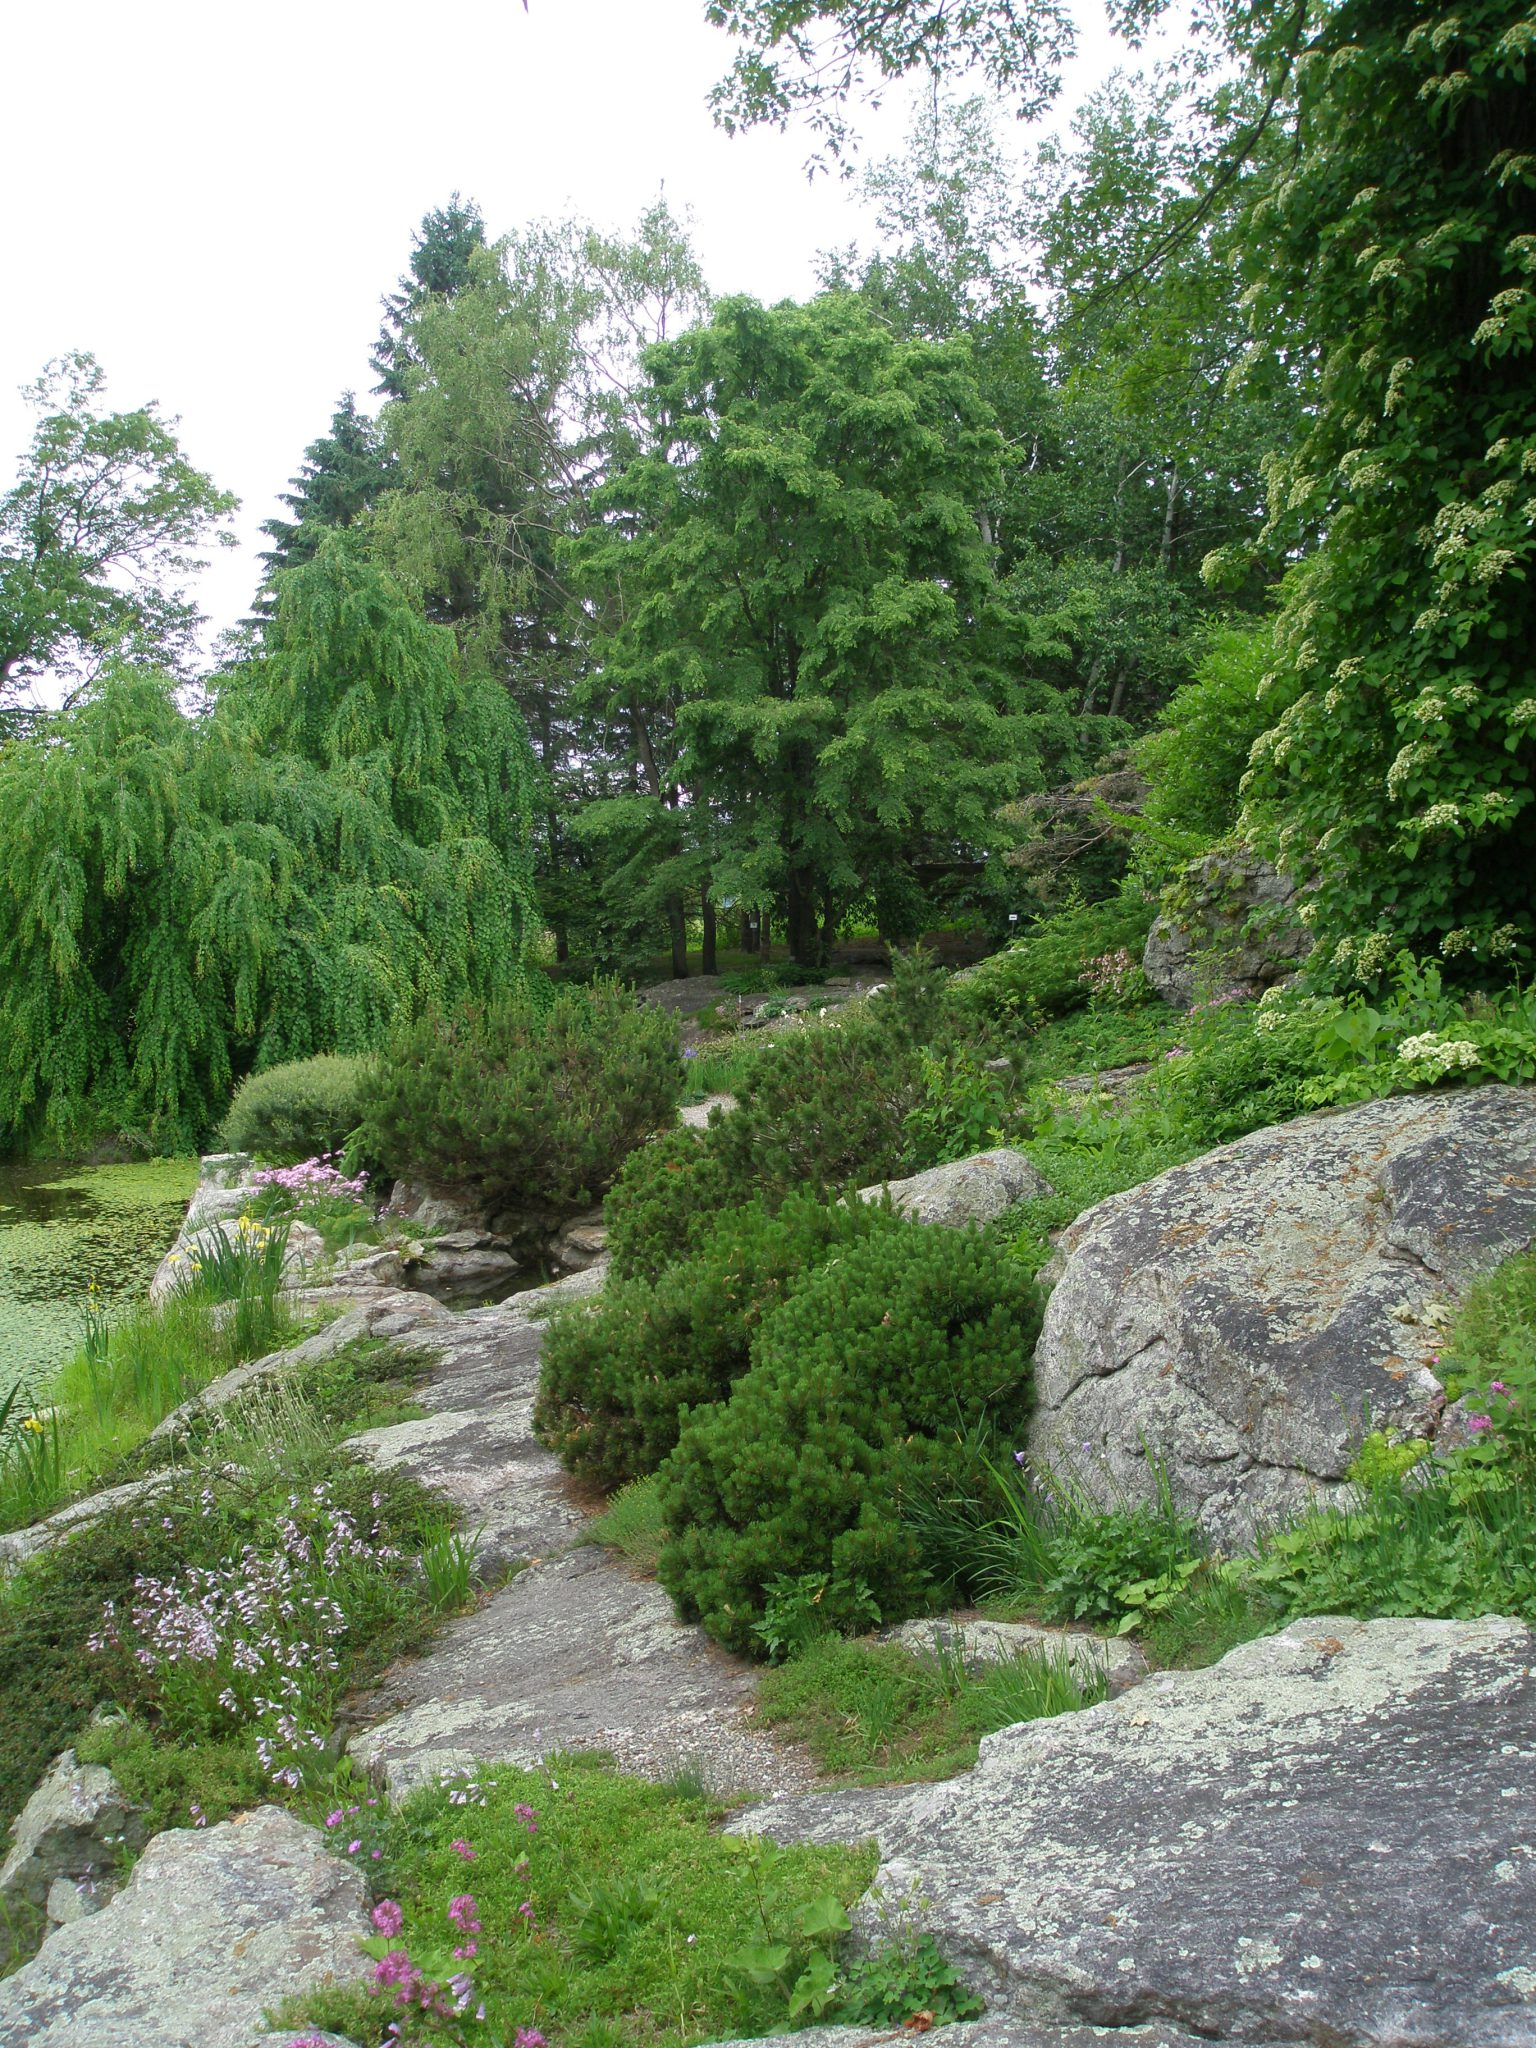 The Rock Ledge Garden